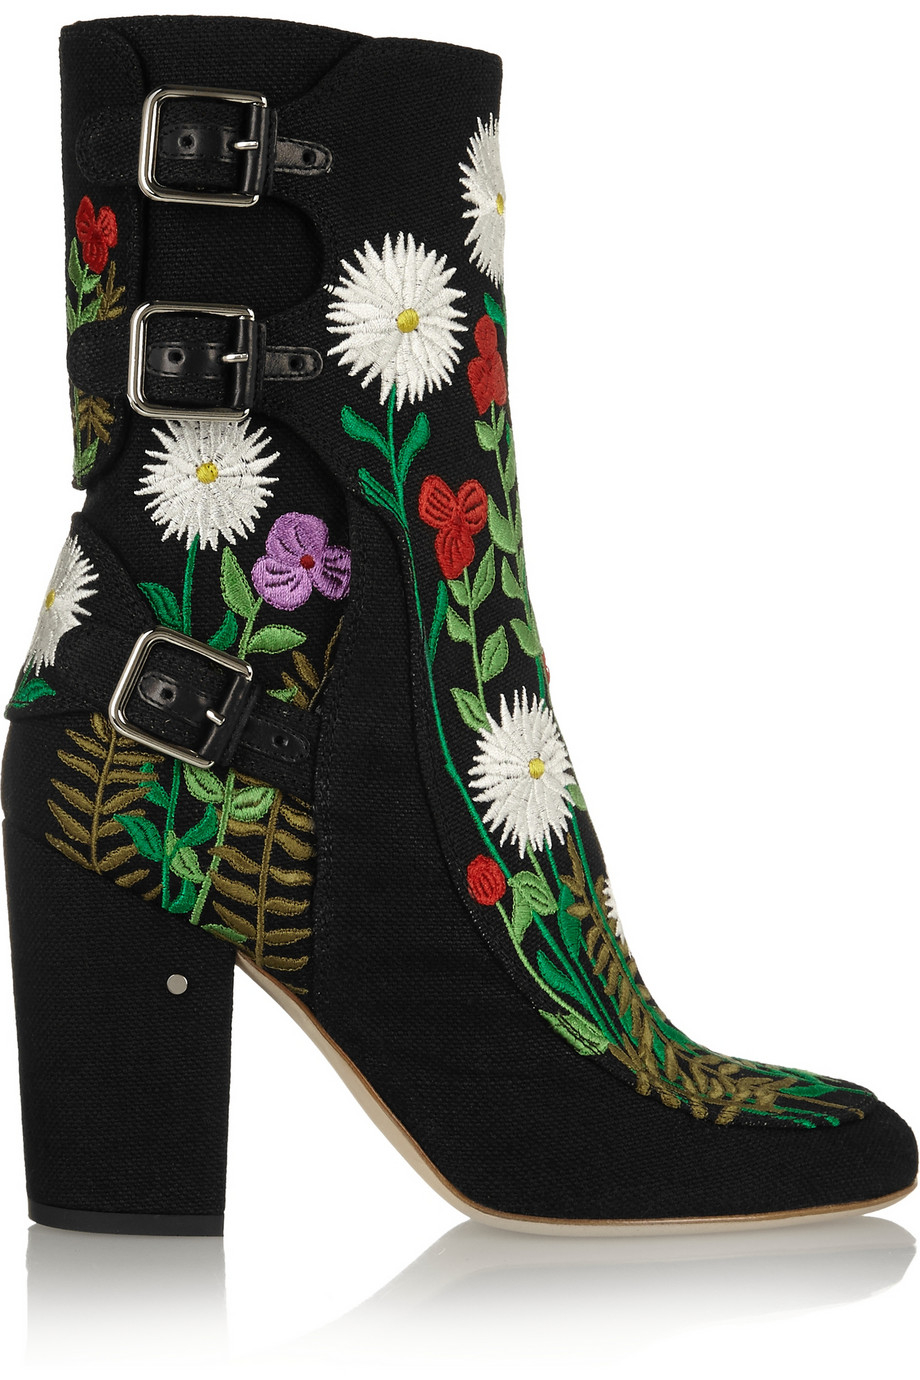 laurence dacade merli floral embroidered canvas ankle